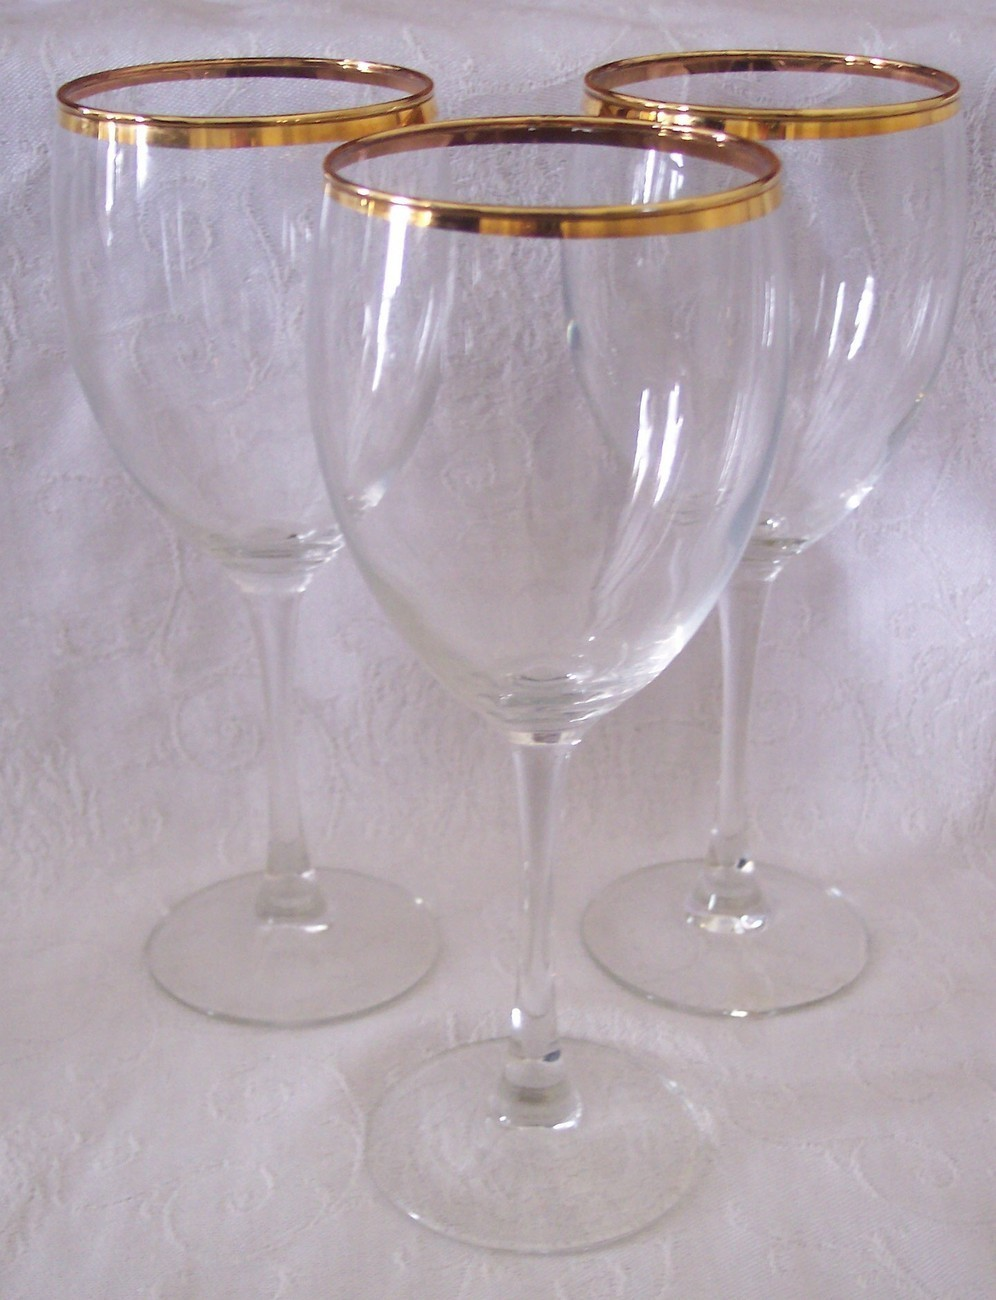 3 crystal wine set glass glasses gold band trim rim rimmed 7 3 4 tall glasses cups mugs - Lenox gold rimmed wine glasses ...